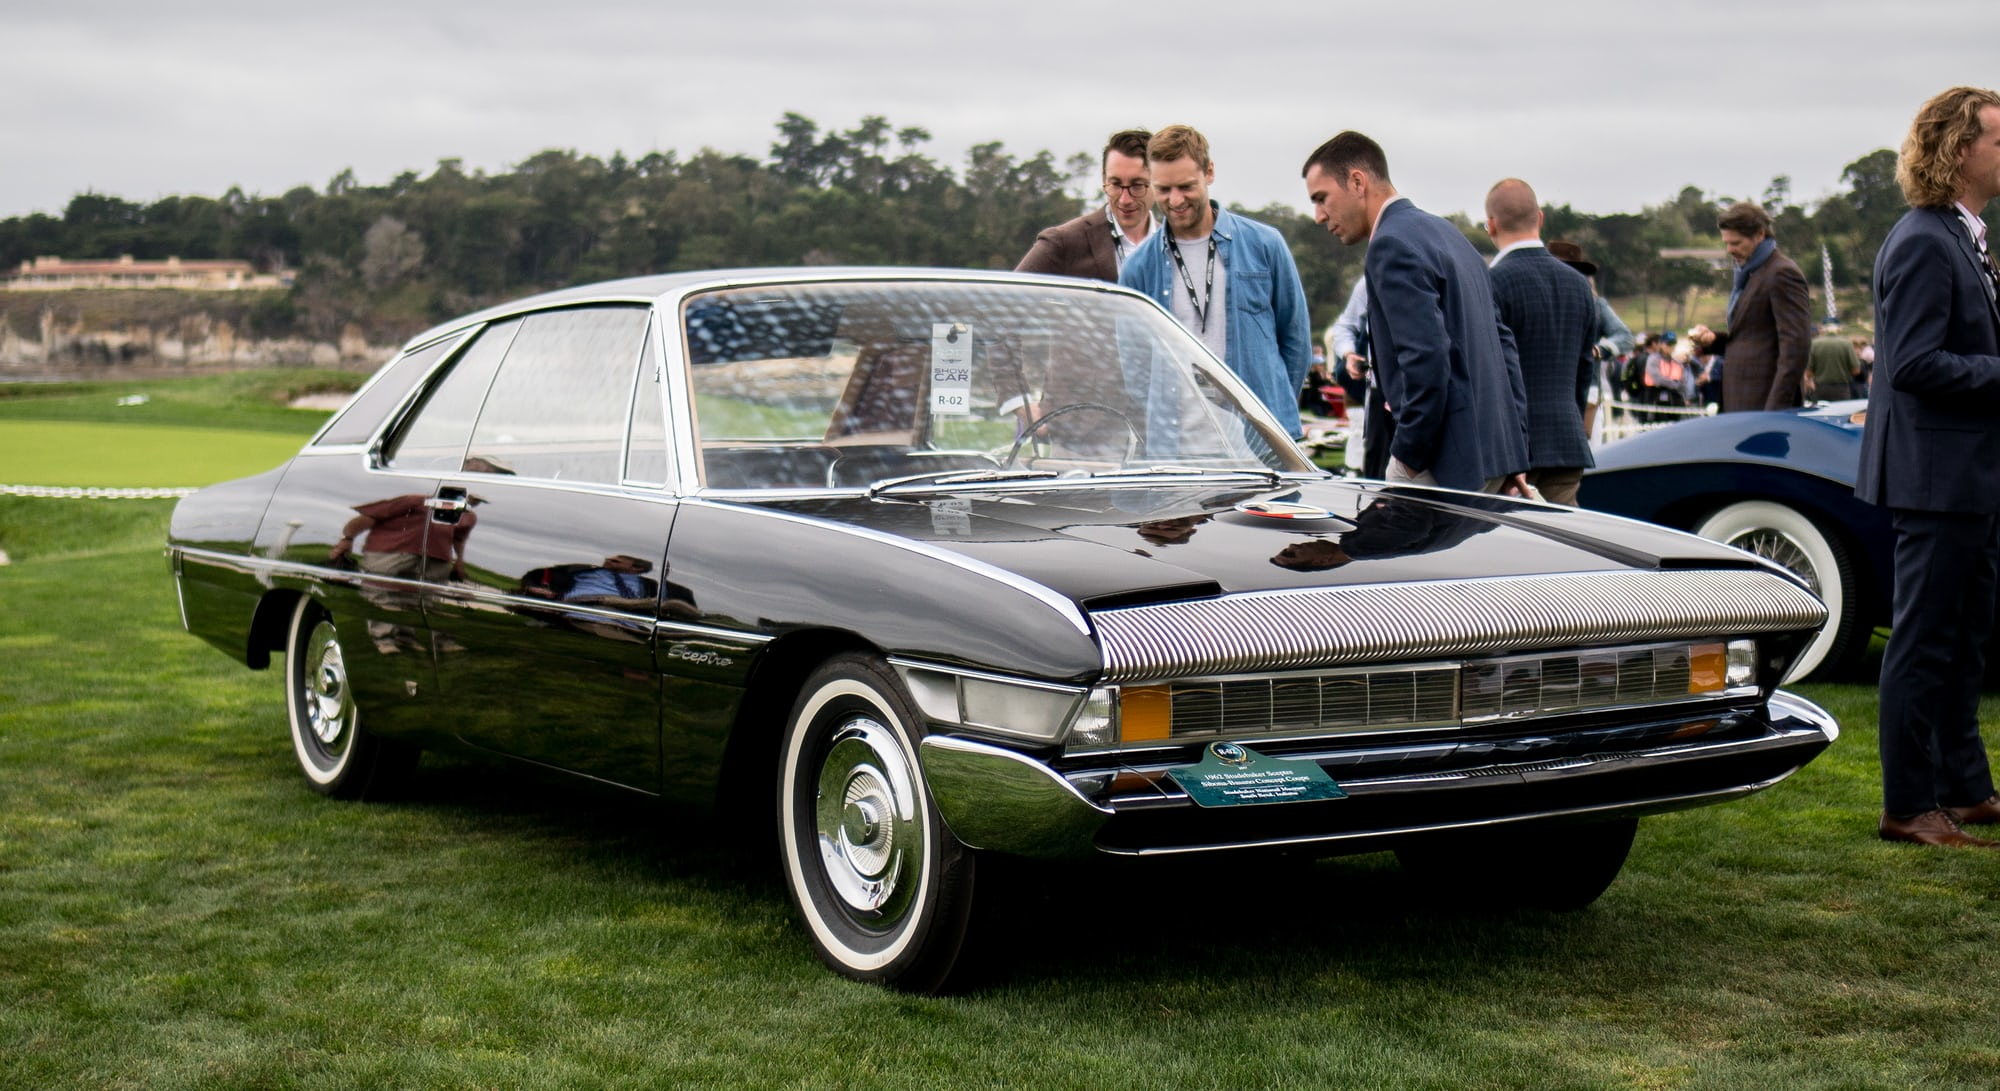 Photo Report: Car And Watch Spotting At Monterey Car Week 2017 Photo Report: Car And Watch Spotting At Monterey Car Week 2017 DSC05460